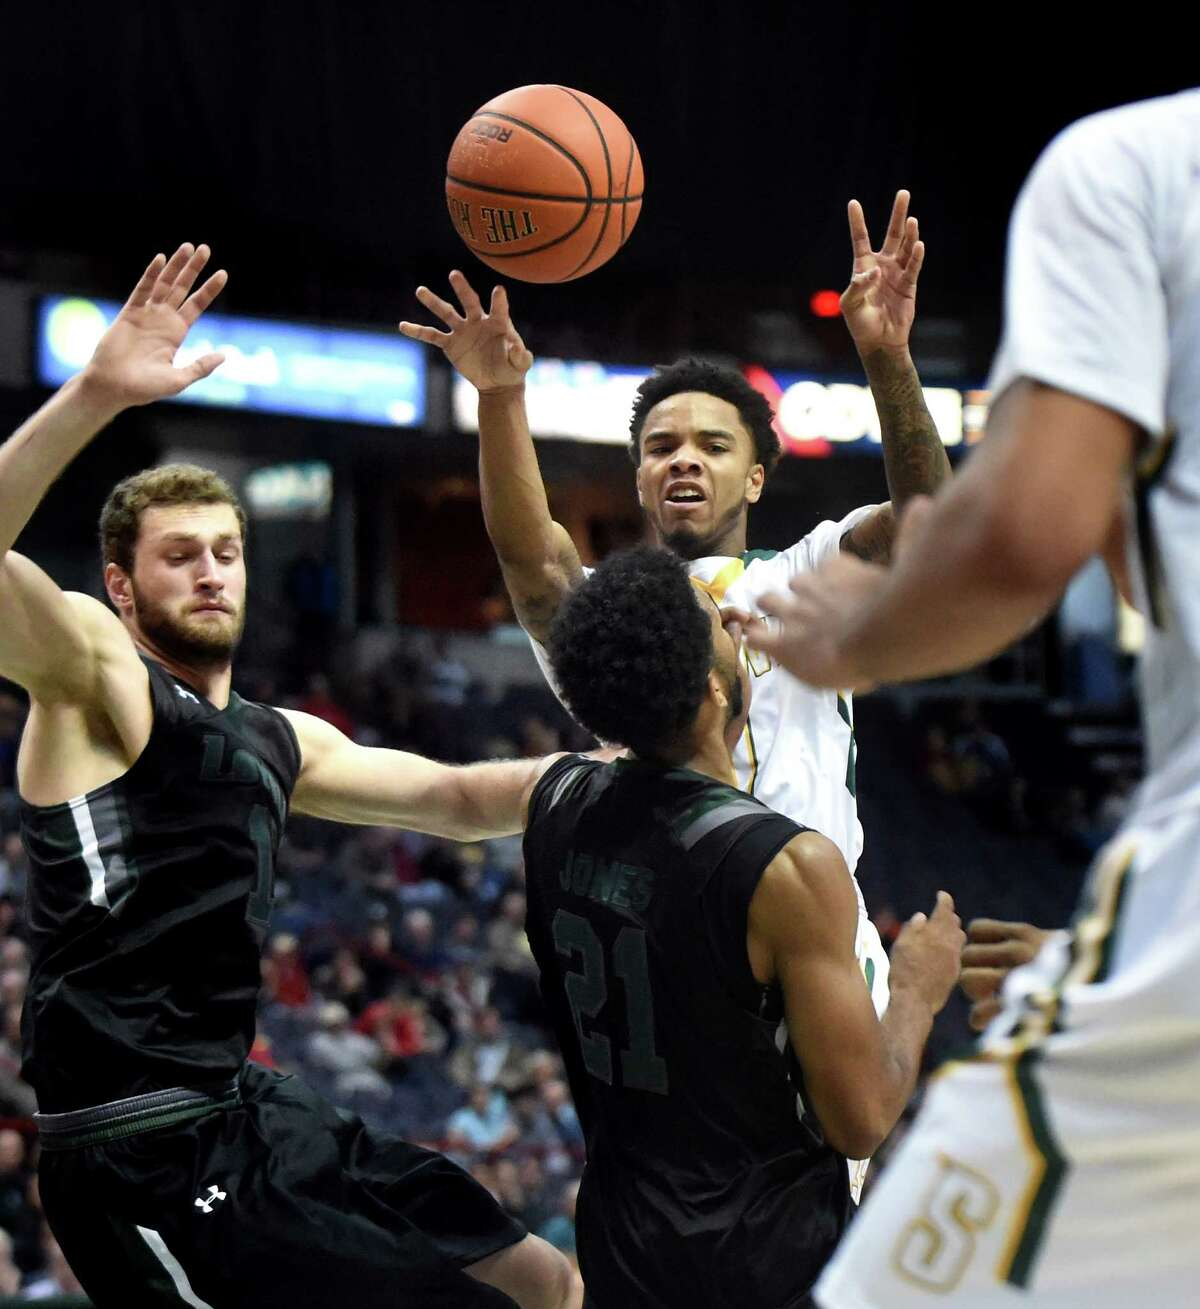 Siena's Marquis Wright, center, passes the ball over Loyola's defense during their basketball game on Saturday, Nov. 28, 2015, at Times Union Center in Albany, N.Y. (Cindy Schultz / Times Union)